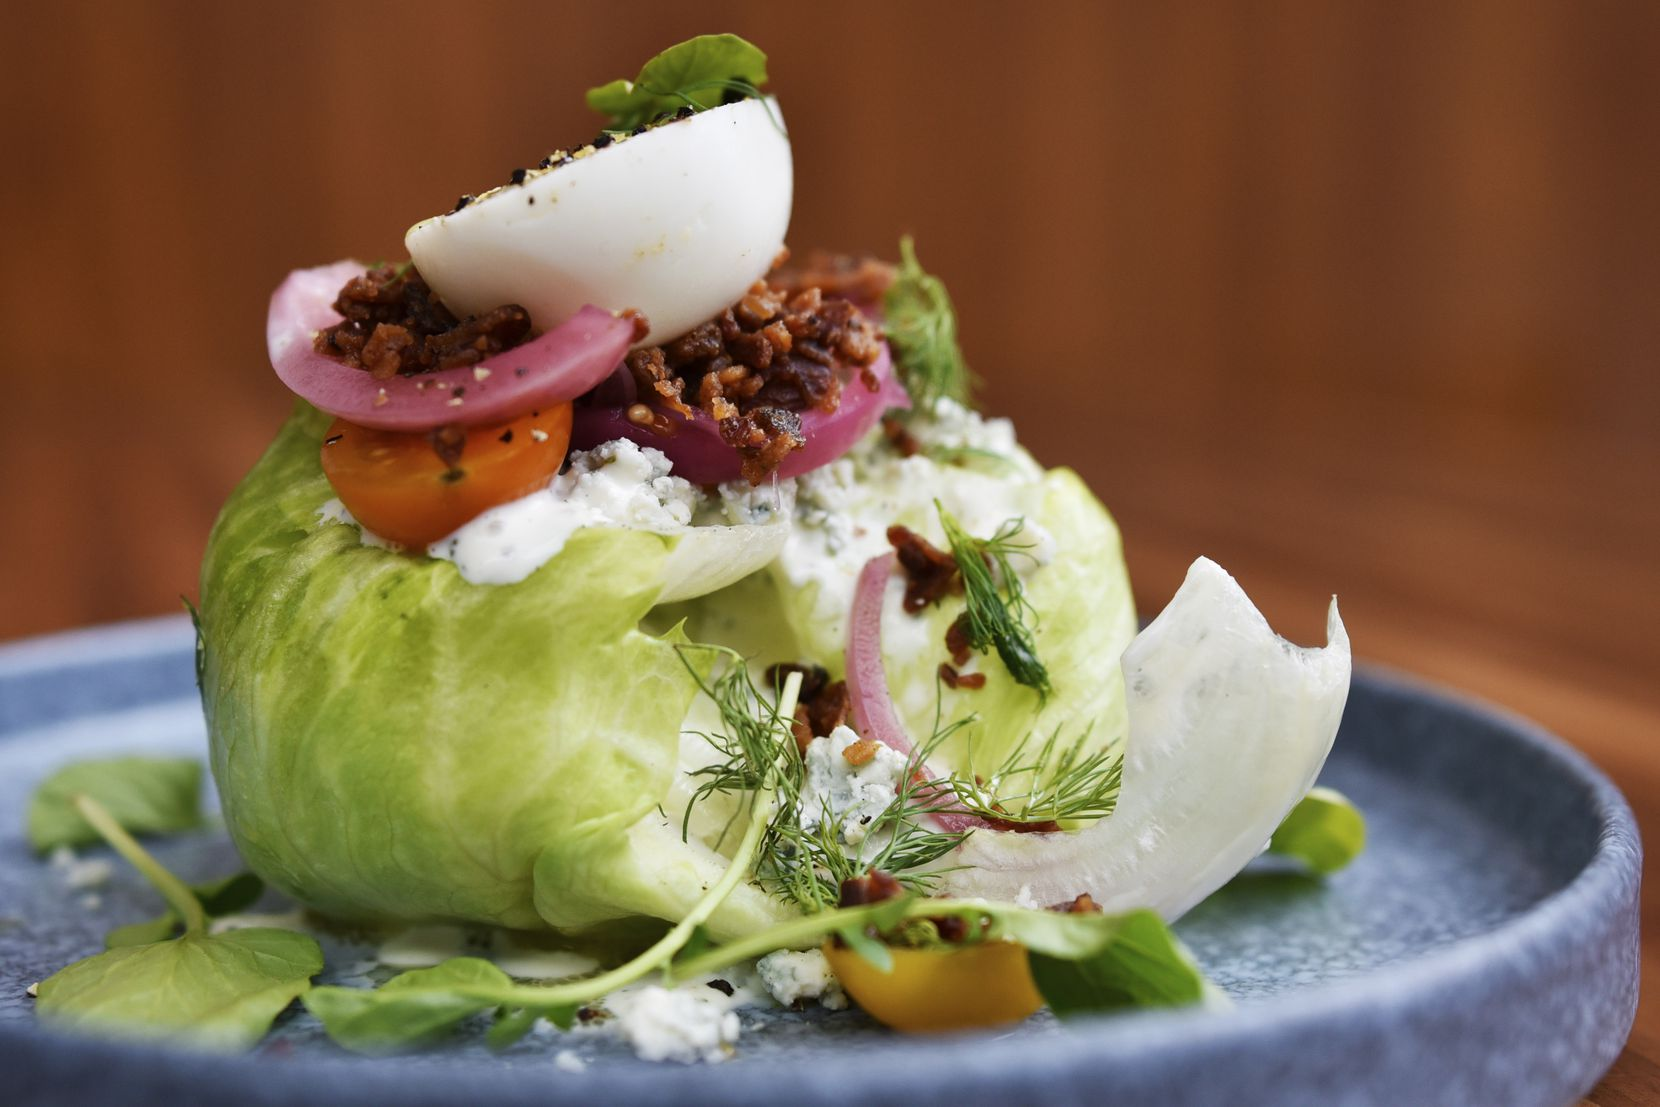 Sloane's Corner serves breakfast, lunch and dinner. Here's the Cobb salad with buttermilk dressing.